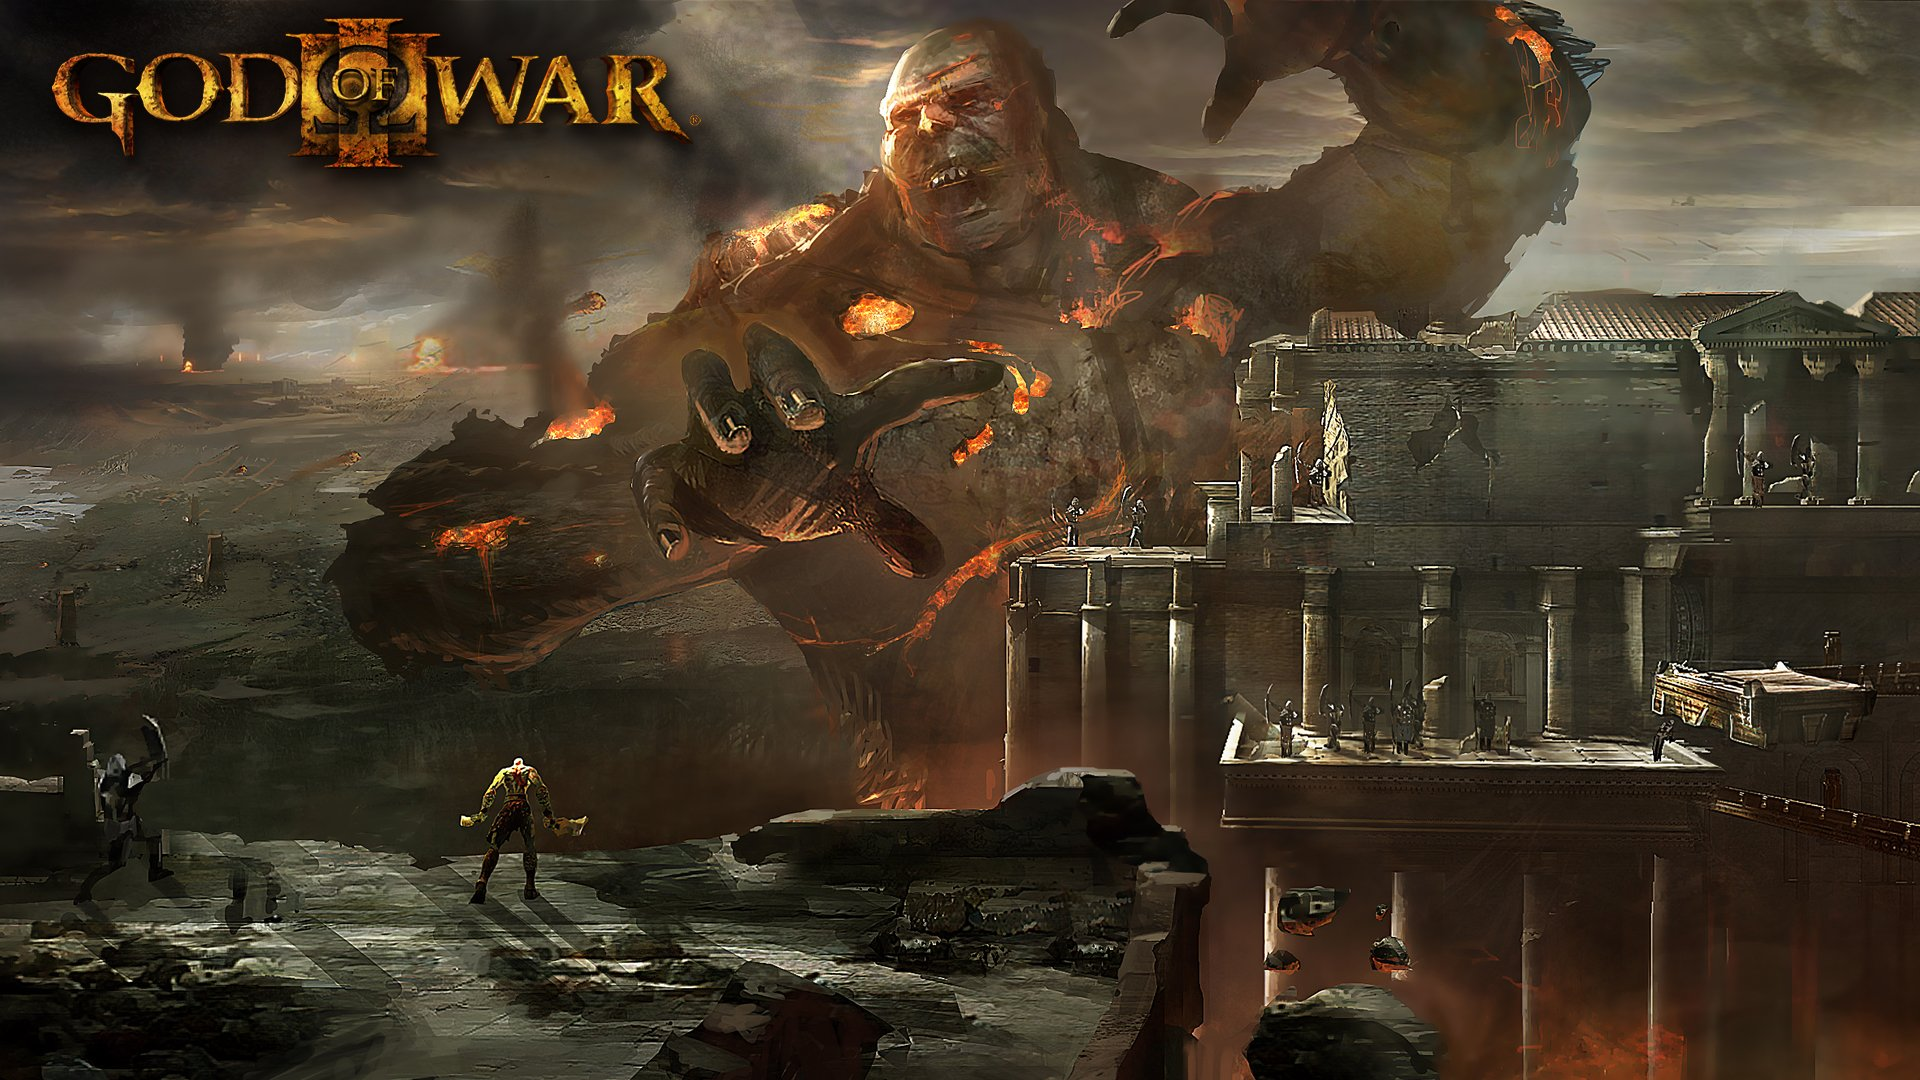 God of War hd wallpaper background   HD Wallpapers 1920x1080